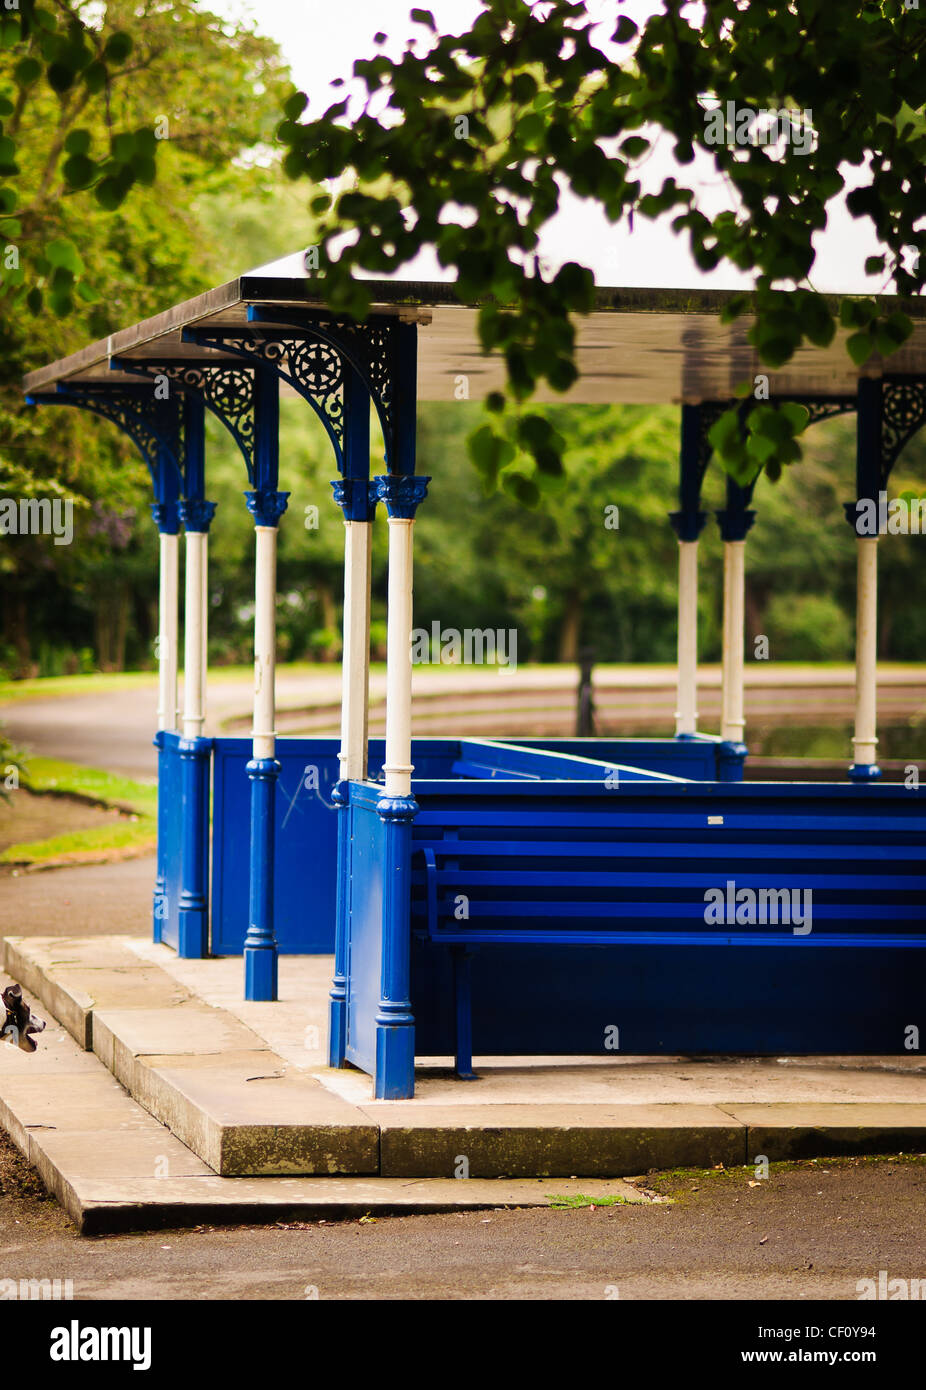 A covered seating area in a public park Stock Photo